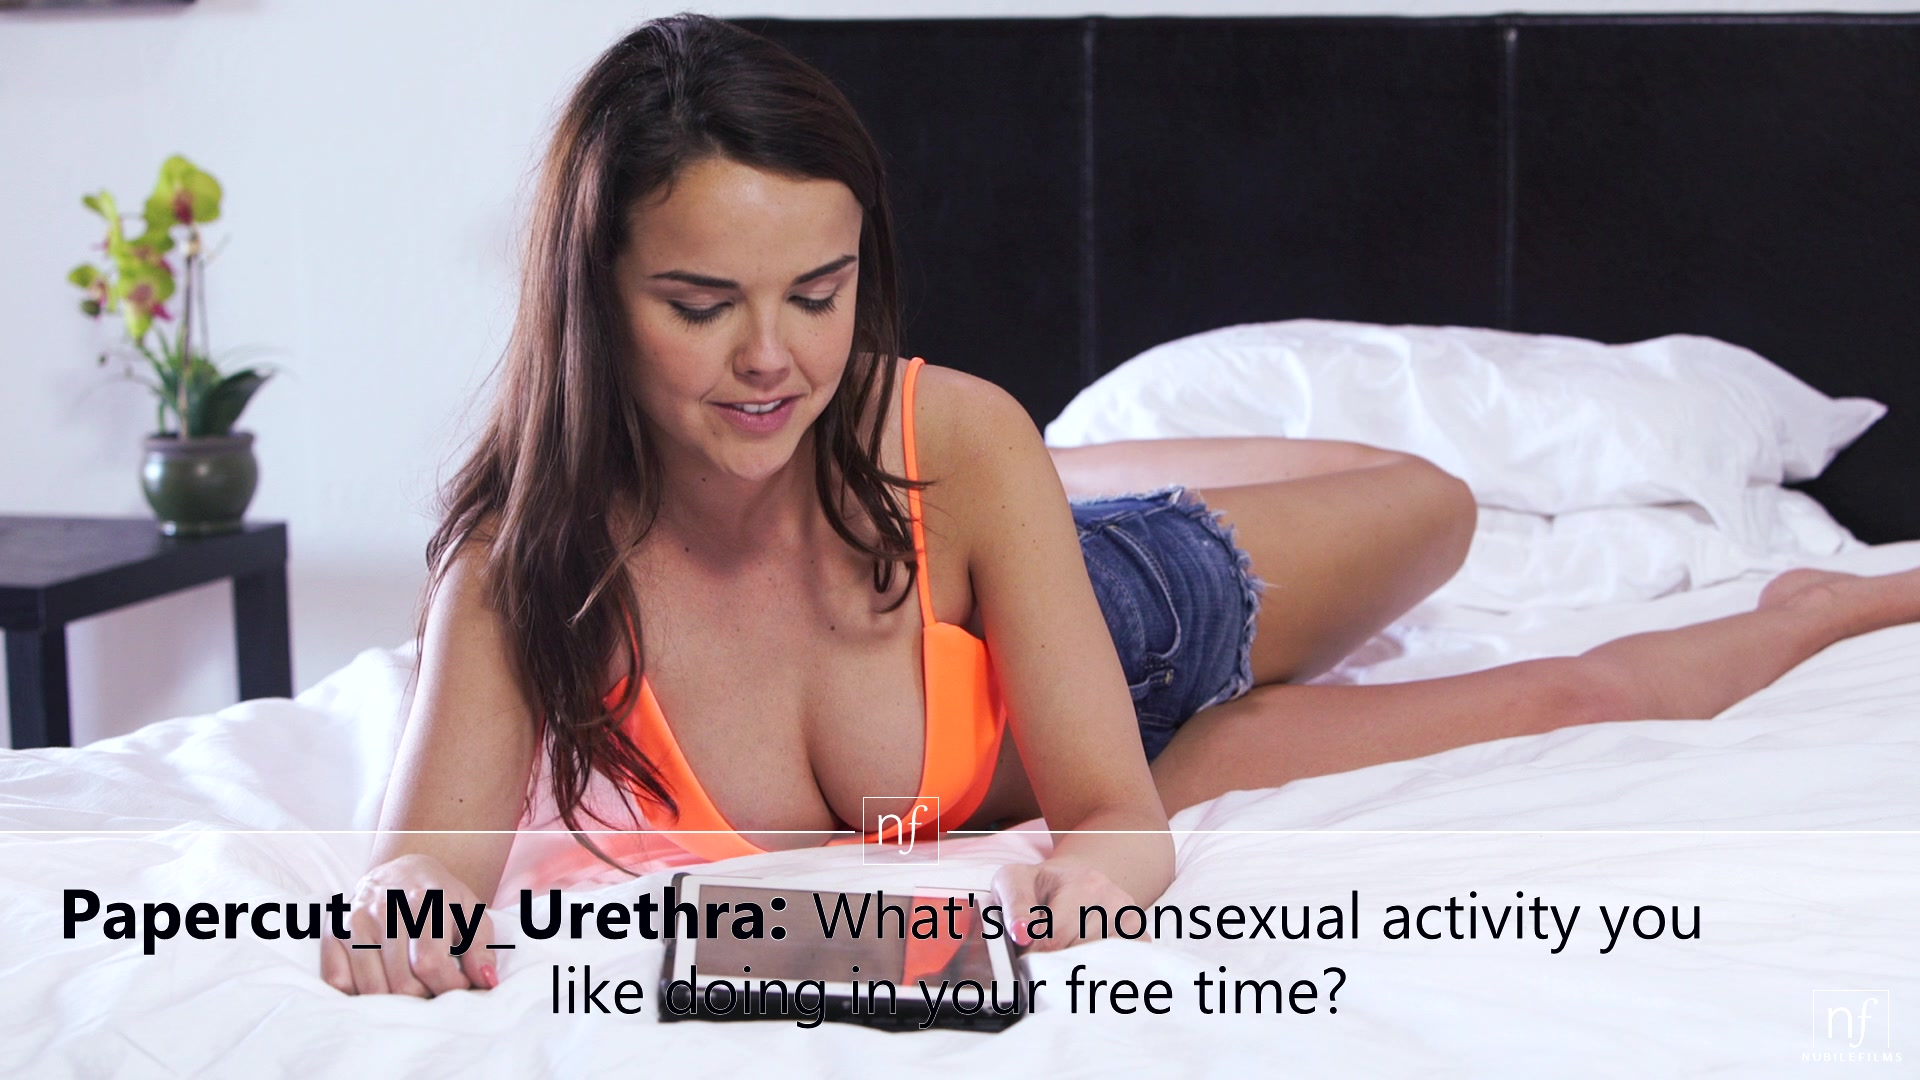 Nubile Films - Ask Me Anything - S15:E16 featuring Emily